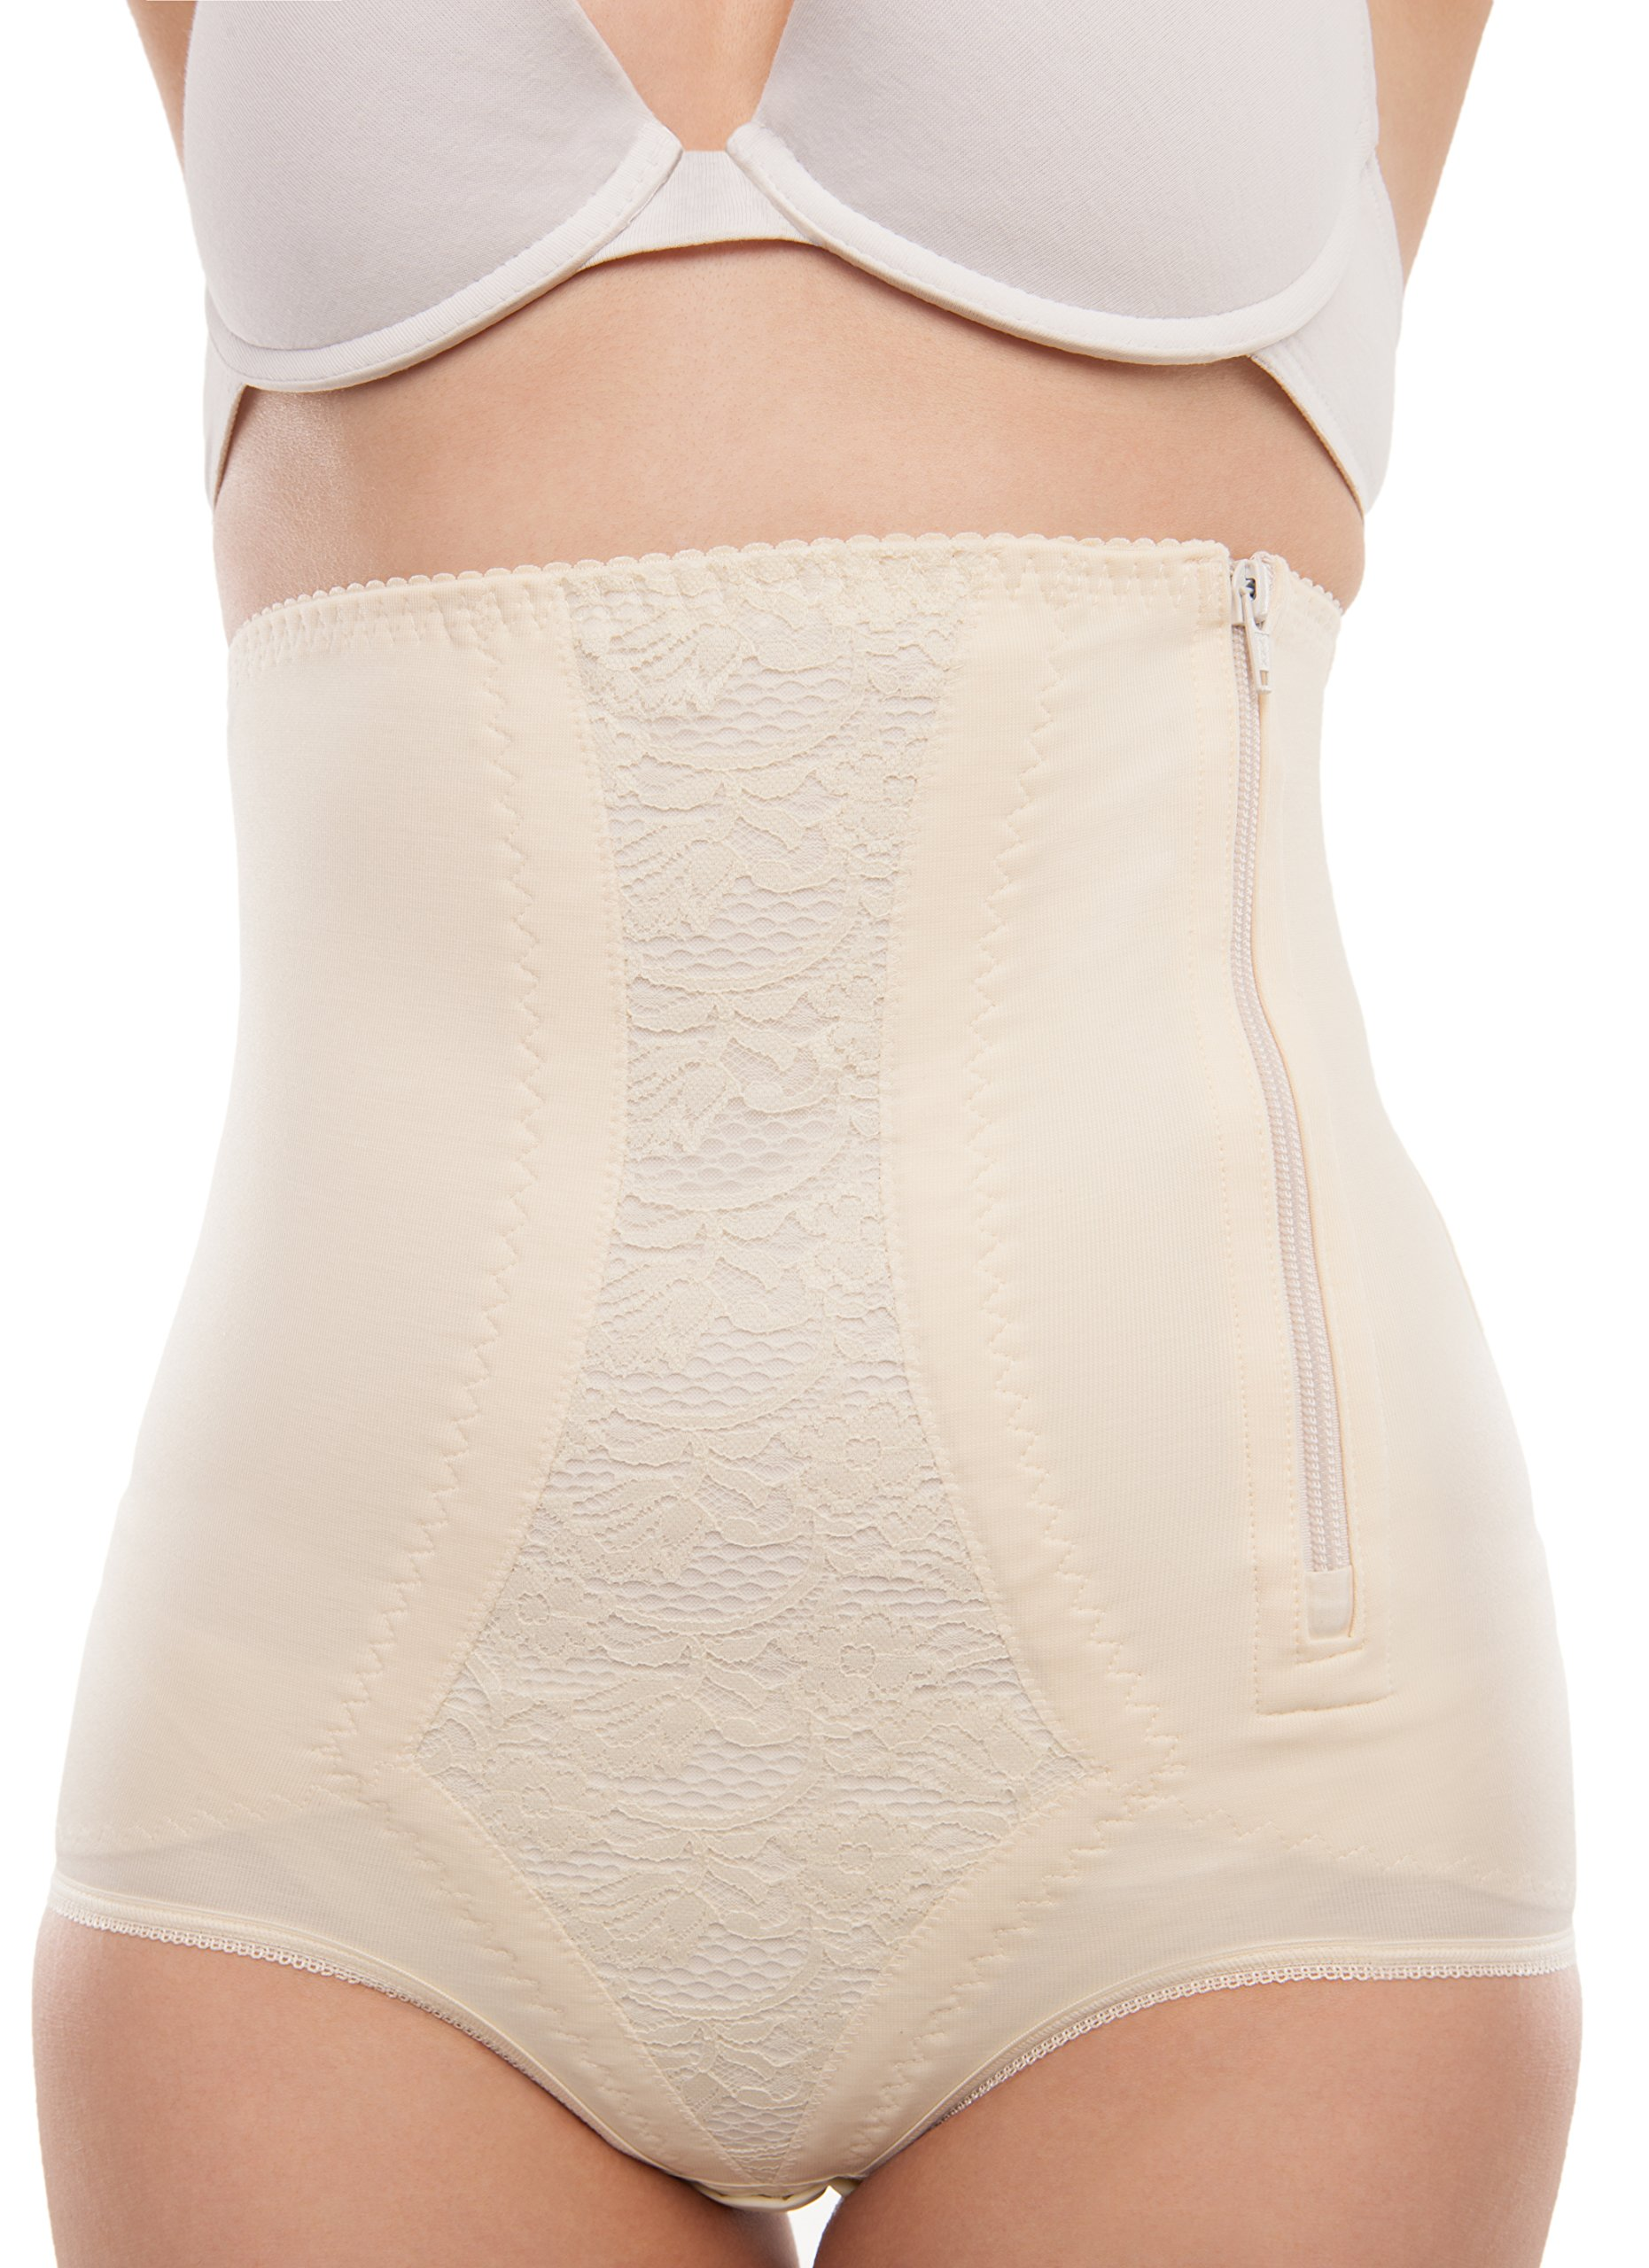 Gabrialla Abdominal Waist Support Body Shaping Slimming Girdle (reduces up to two sizes) Small